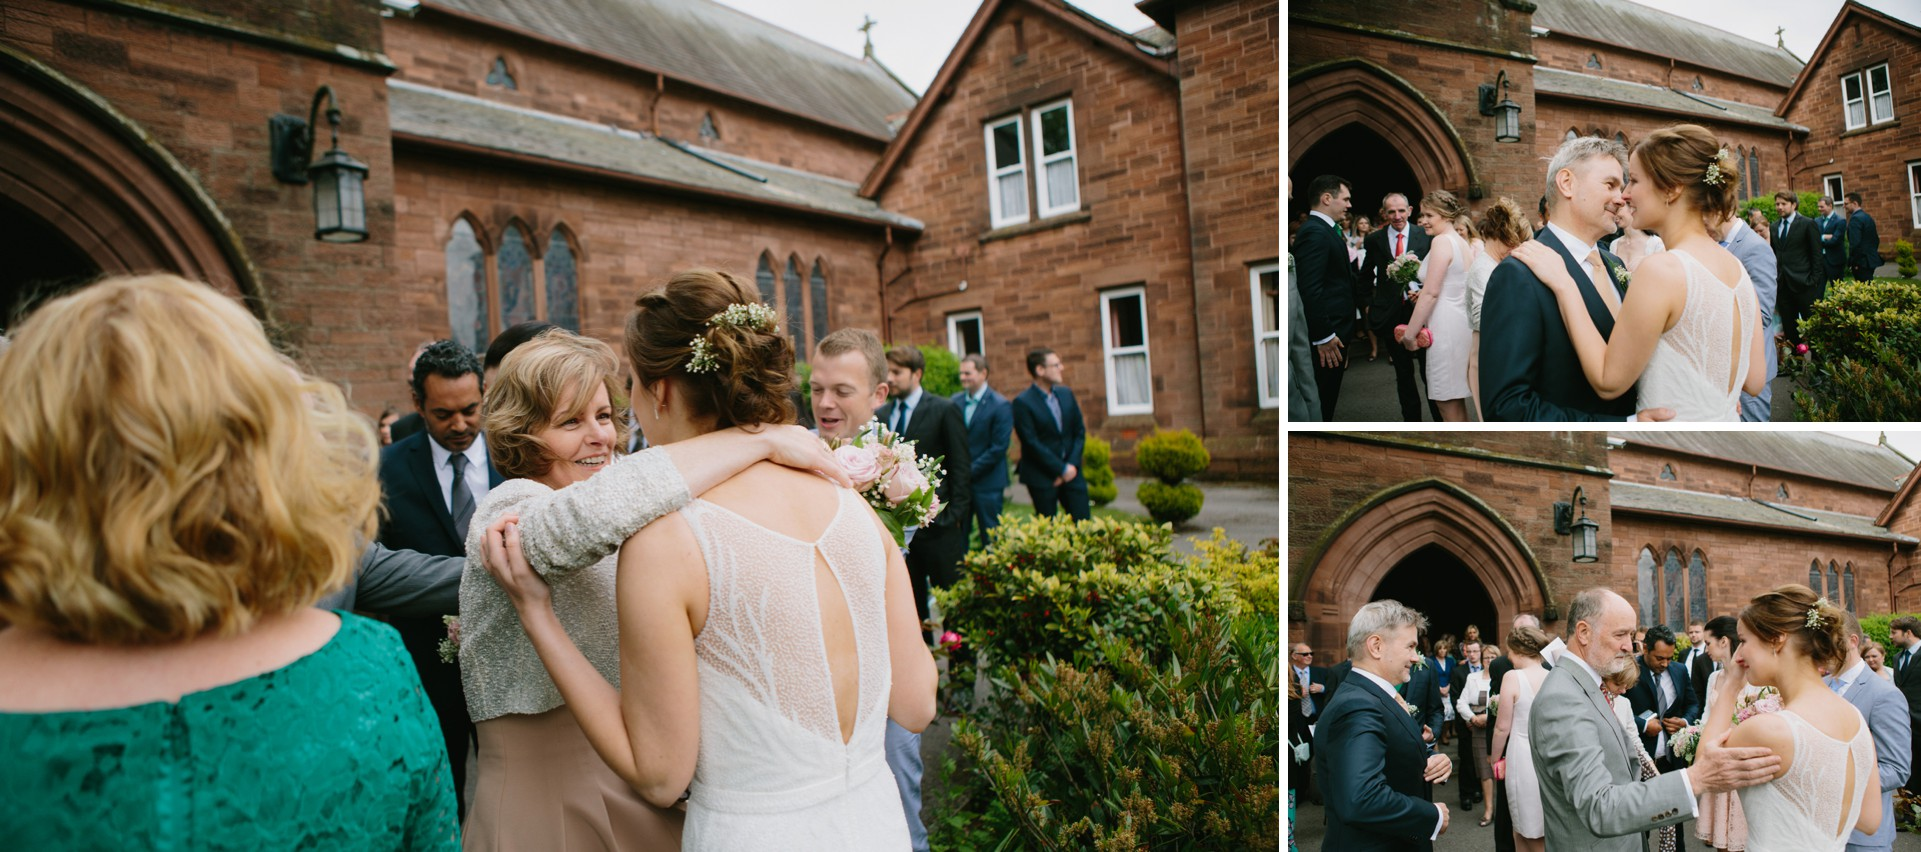 lake-district-wedding-photographer-emese-lorcan_0038